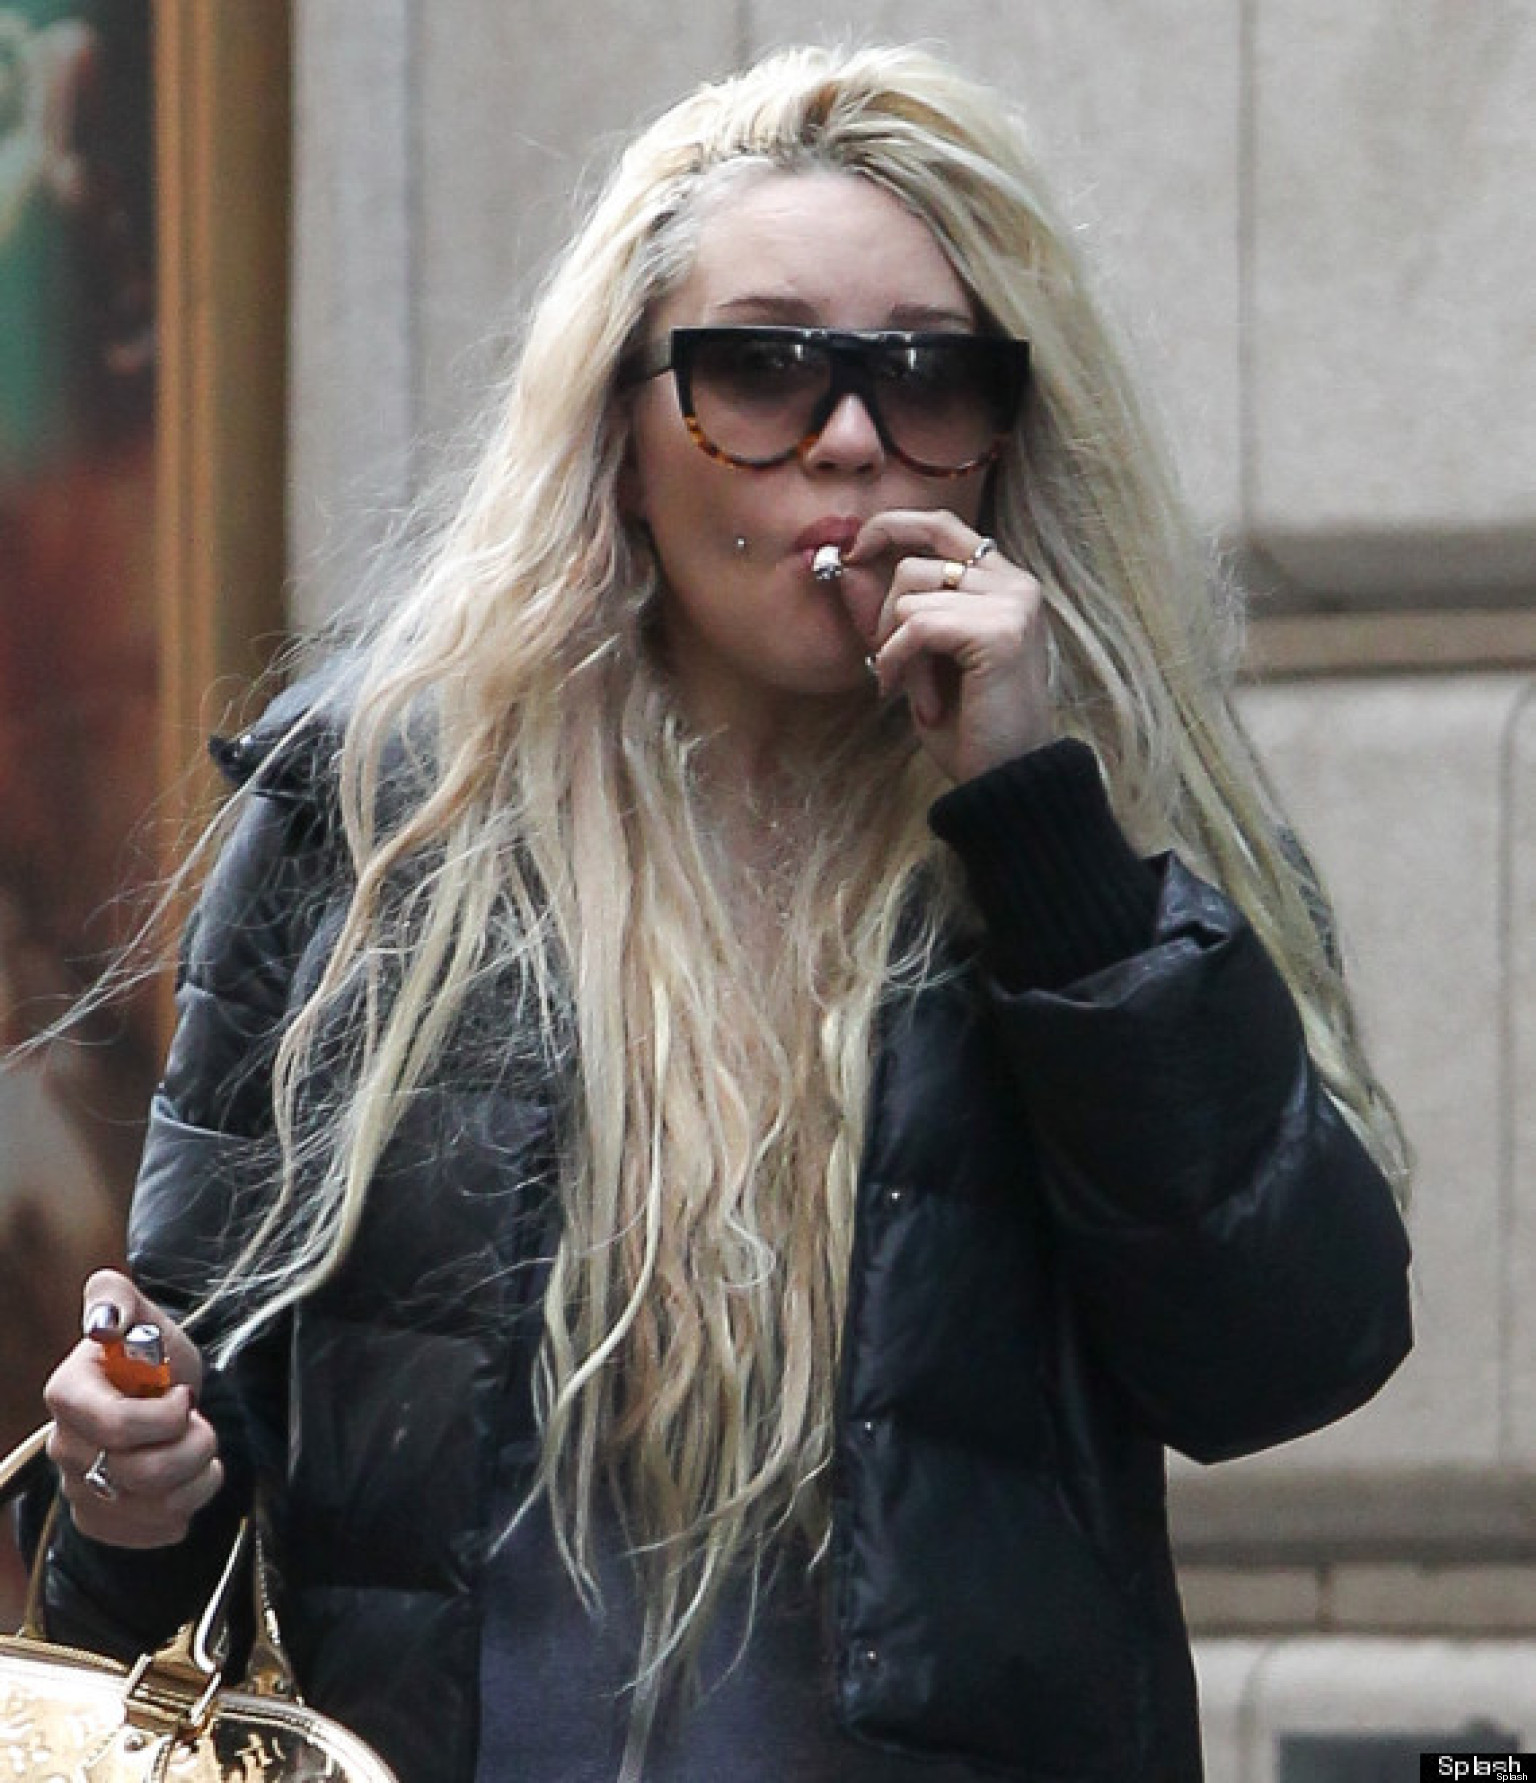 Amanda Bynes Kicked Out Of Gym For Smoking Weed On 4/20 (REPORT) | HuffPost